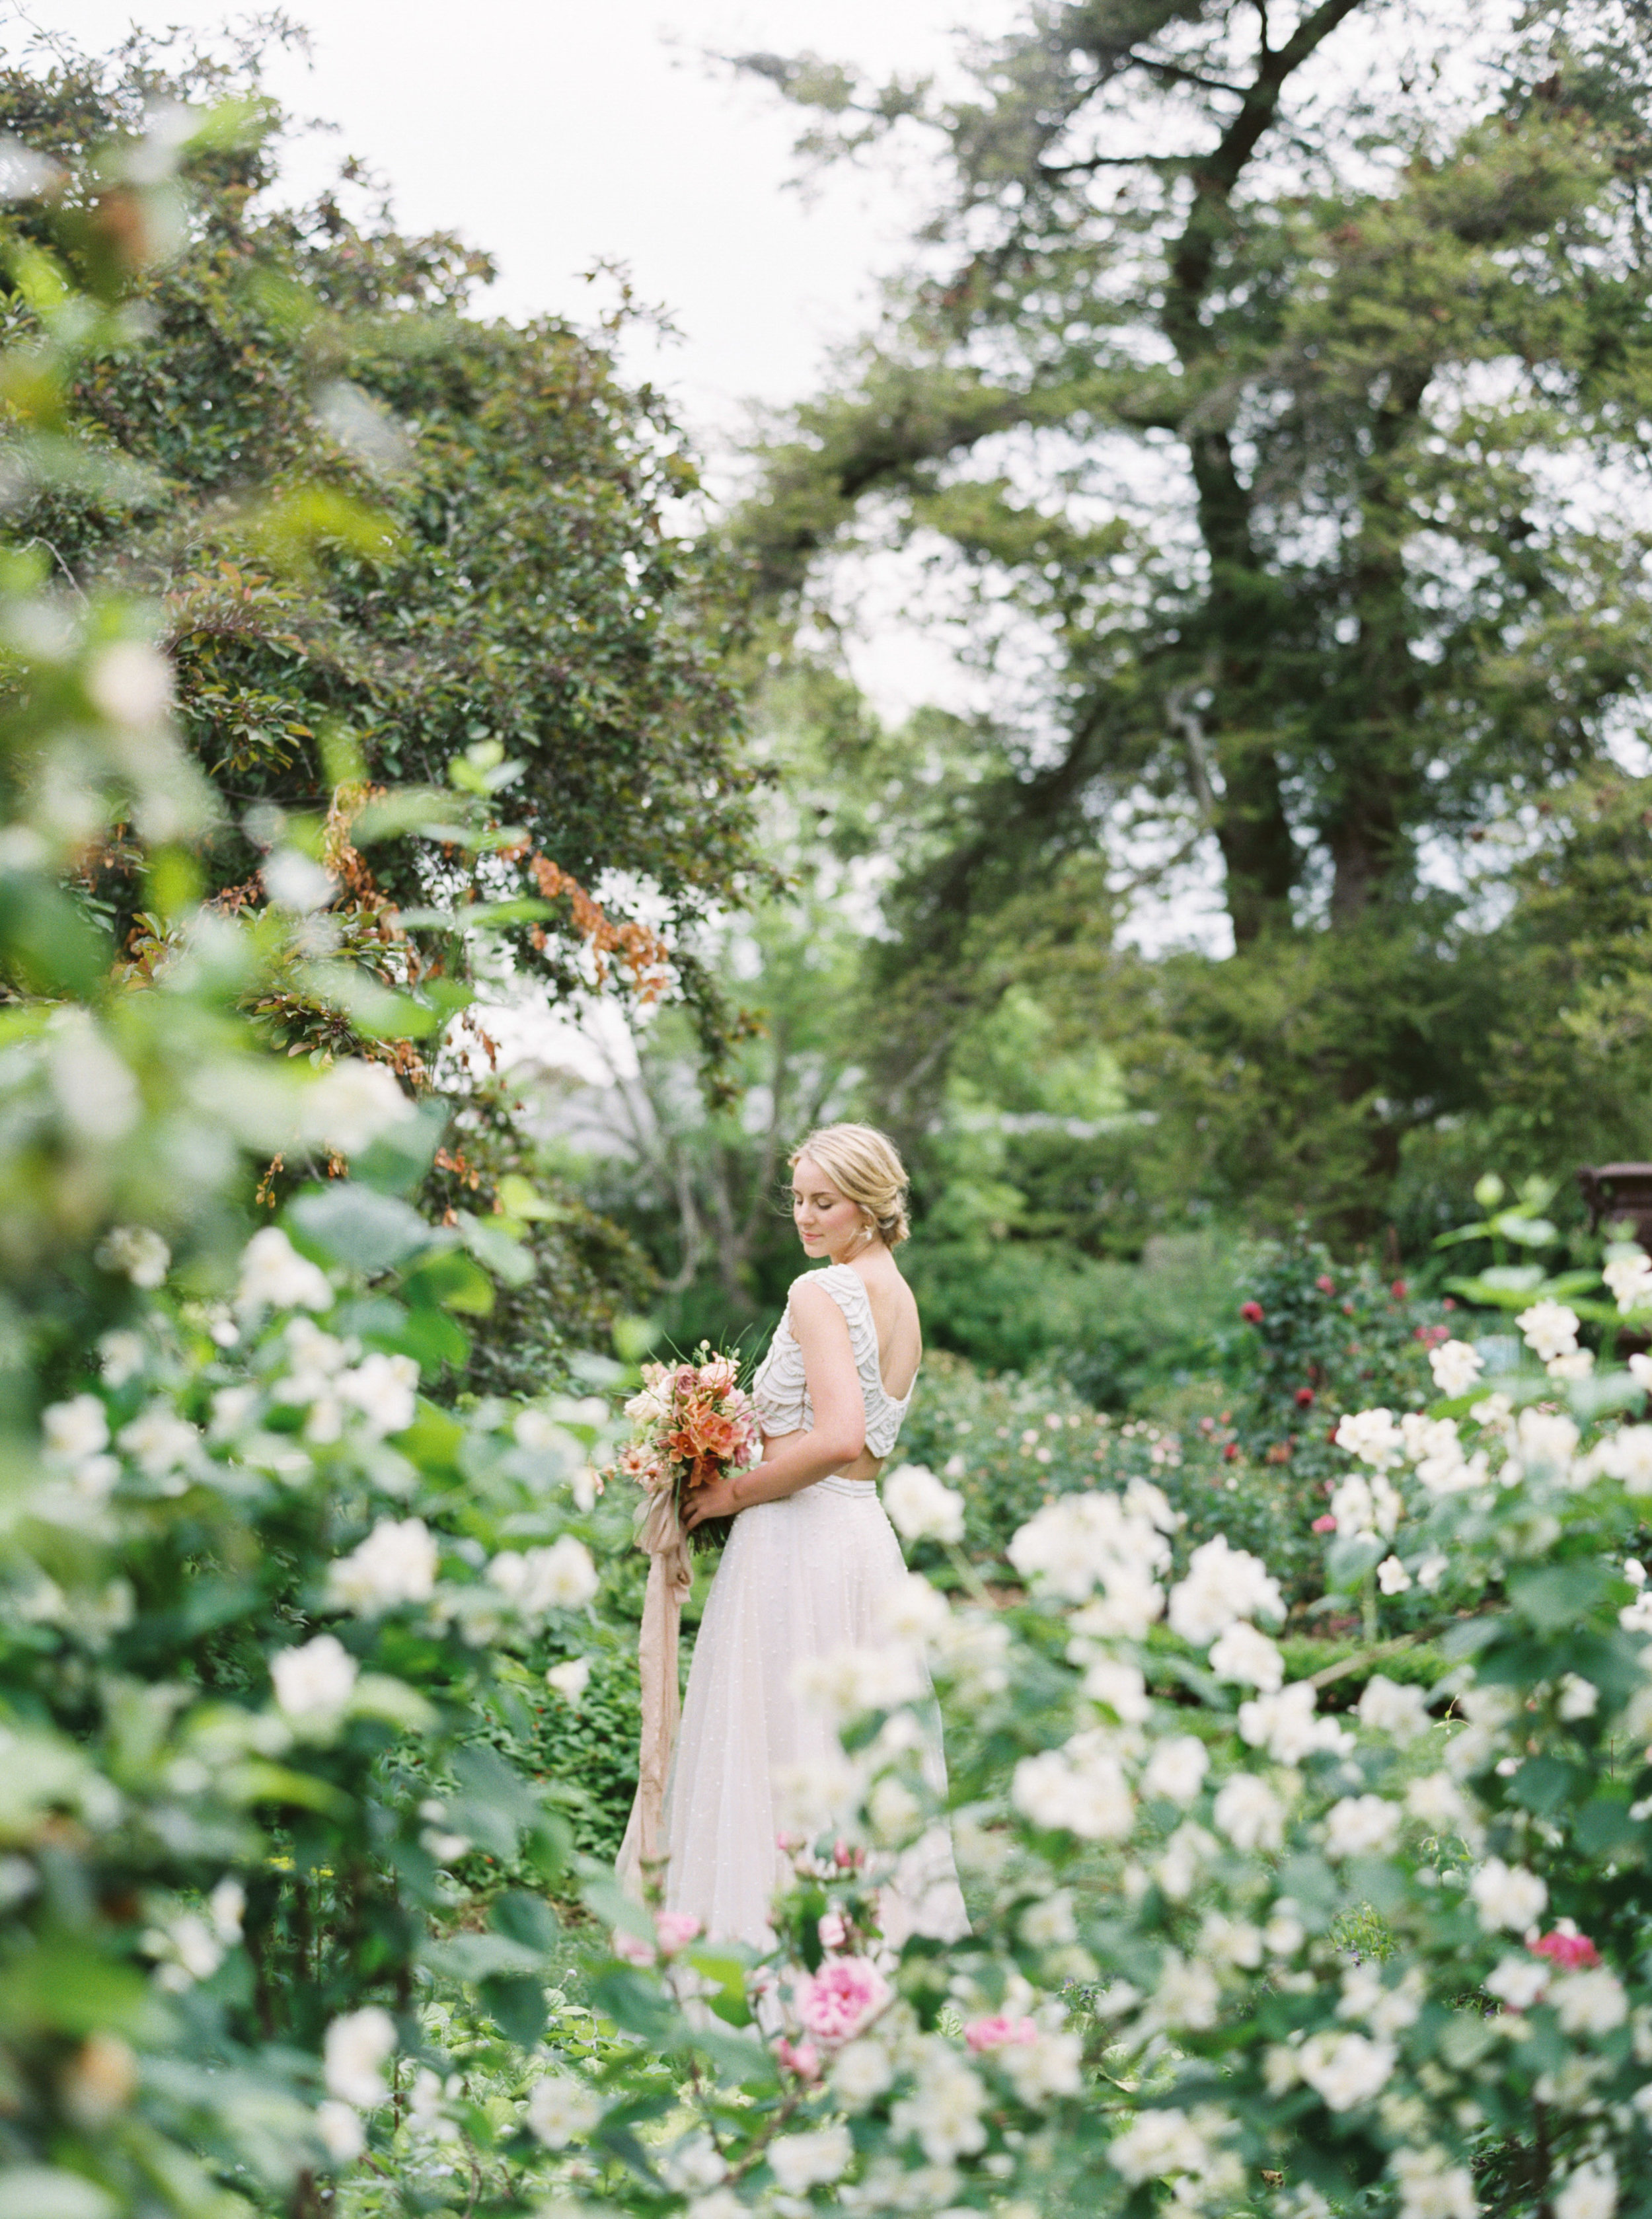 Timeless Southern Highland Wedding Elopement in Bowral NSW Fine Art Film Photographer Sheri McMahon-28.jpg